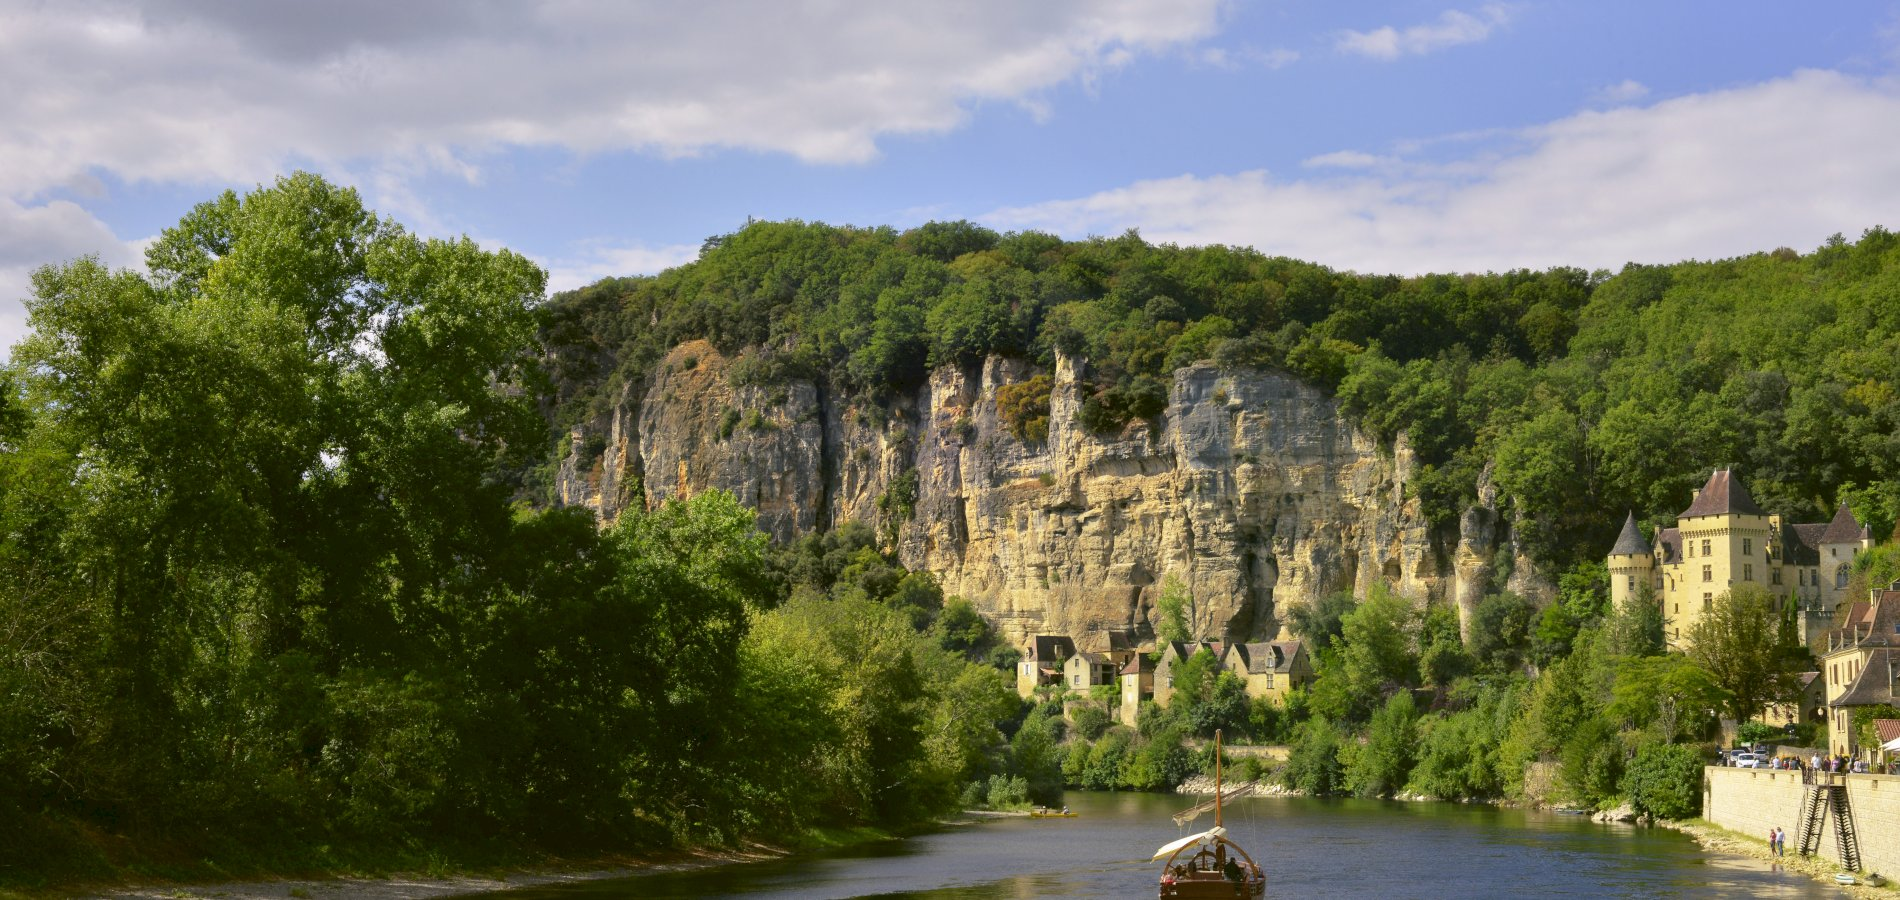 Ophorus Tours - Villages of the Dordogne Private Half Day Trip from Sarlat for 2 persons